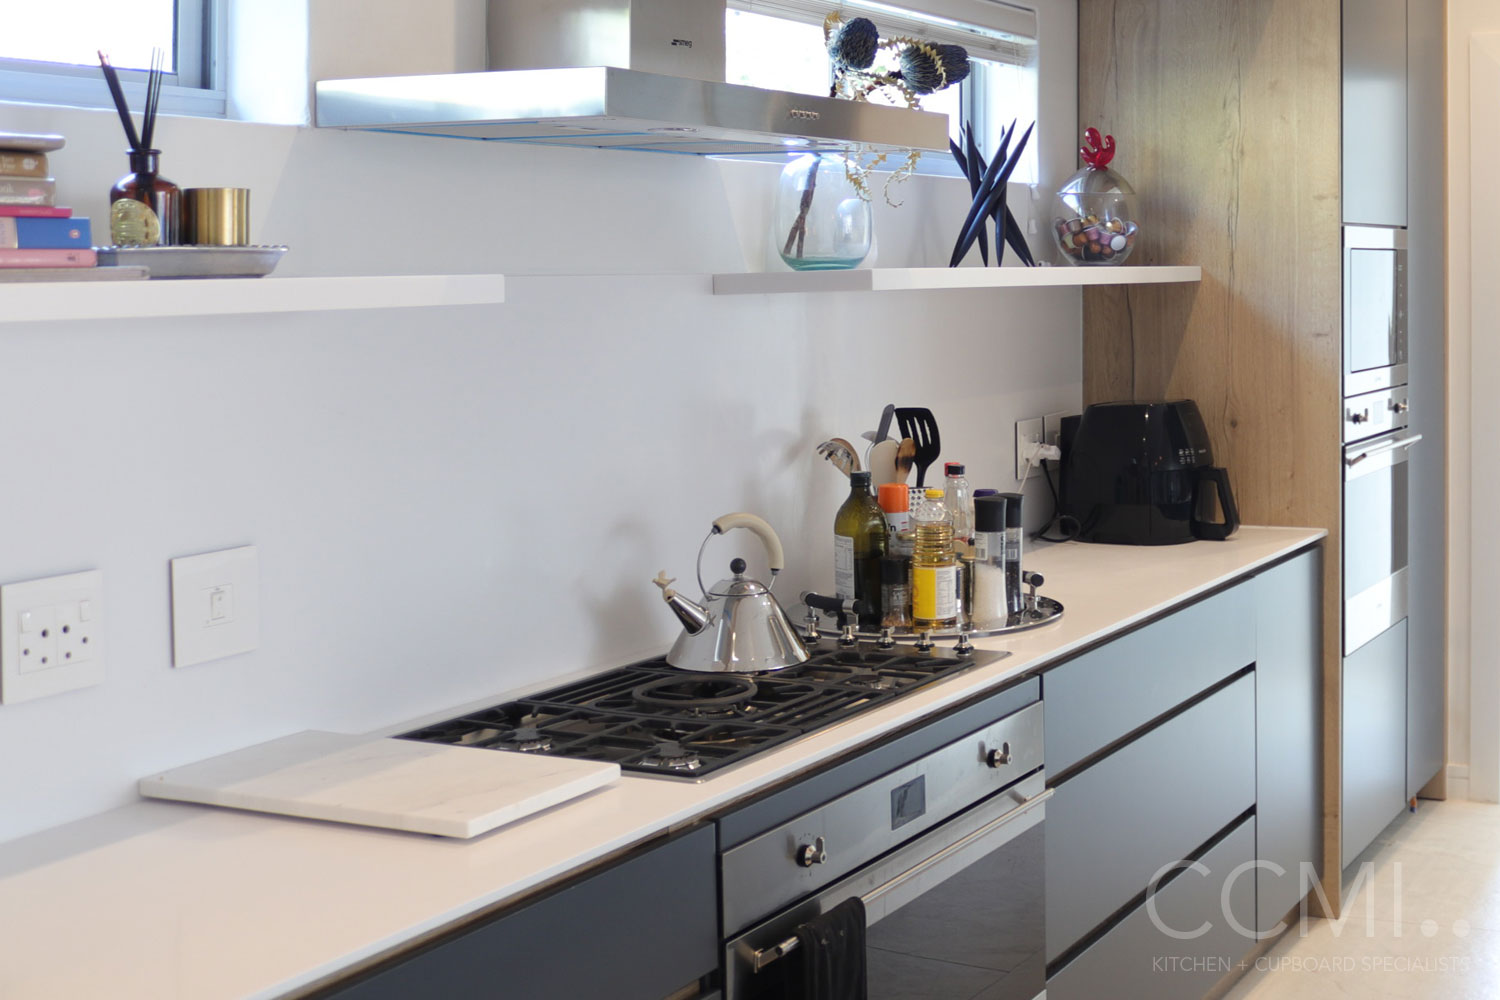 artwork displayed in the kitchen on floating shelves creates points of interest in the design